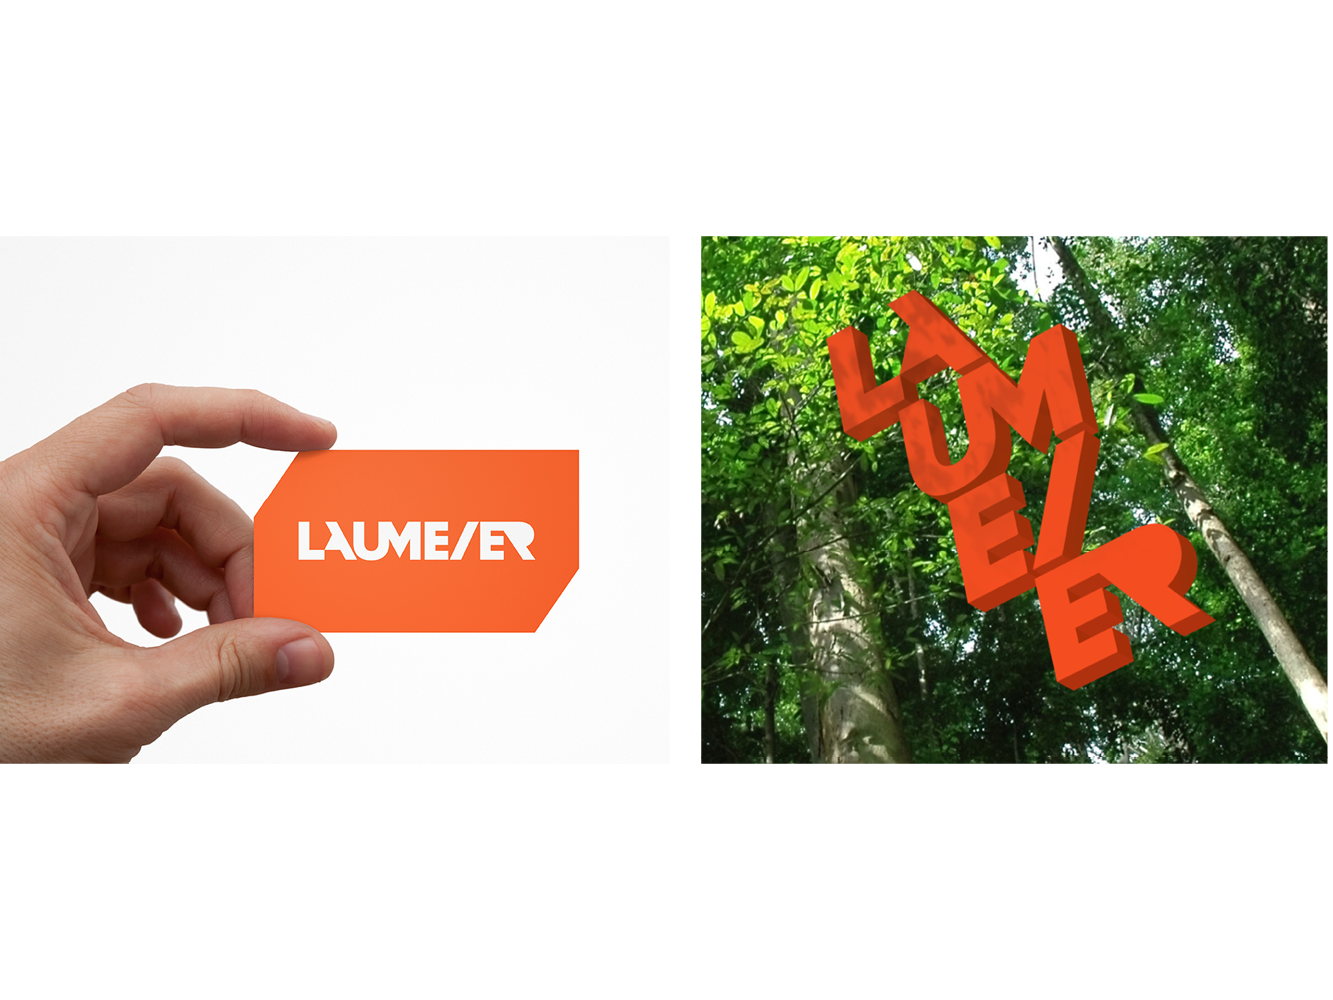 Side-by-side image showing Laumeier Sculpture Park business cards and logo